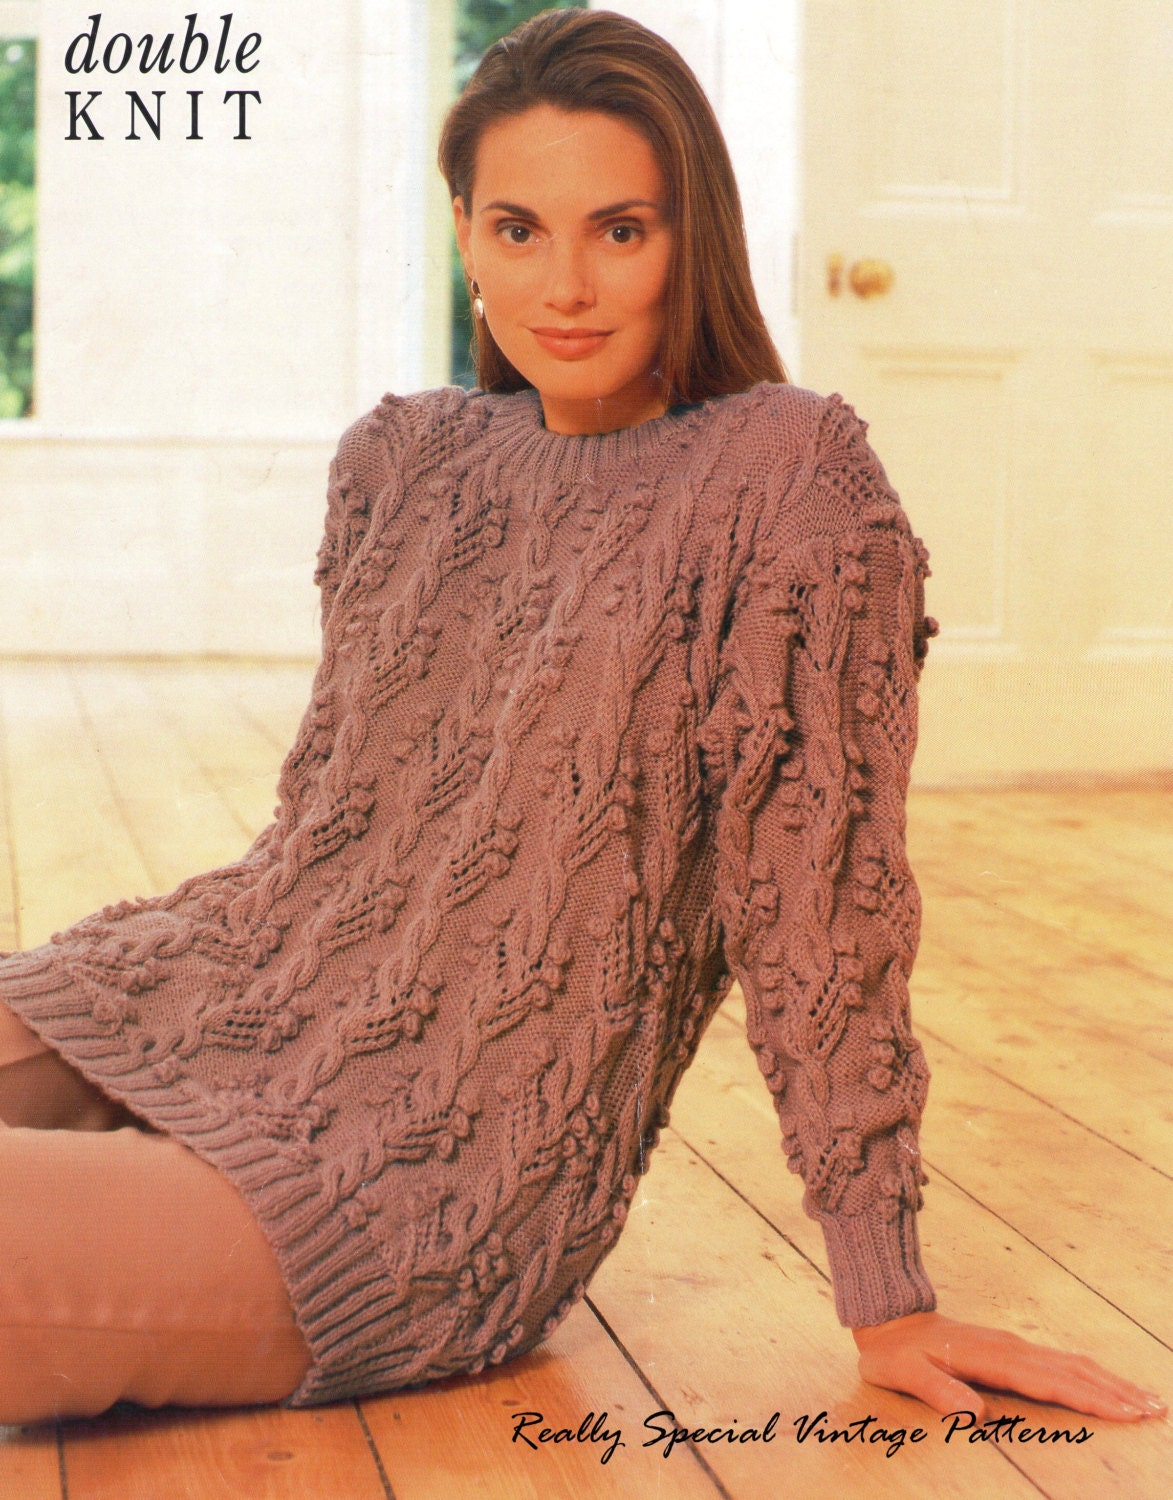 Tunic Sweater Knitting Pattern : Aran Tunic Sweater Knitting Pattern D.K by PamoolahVintage